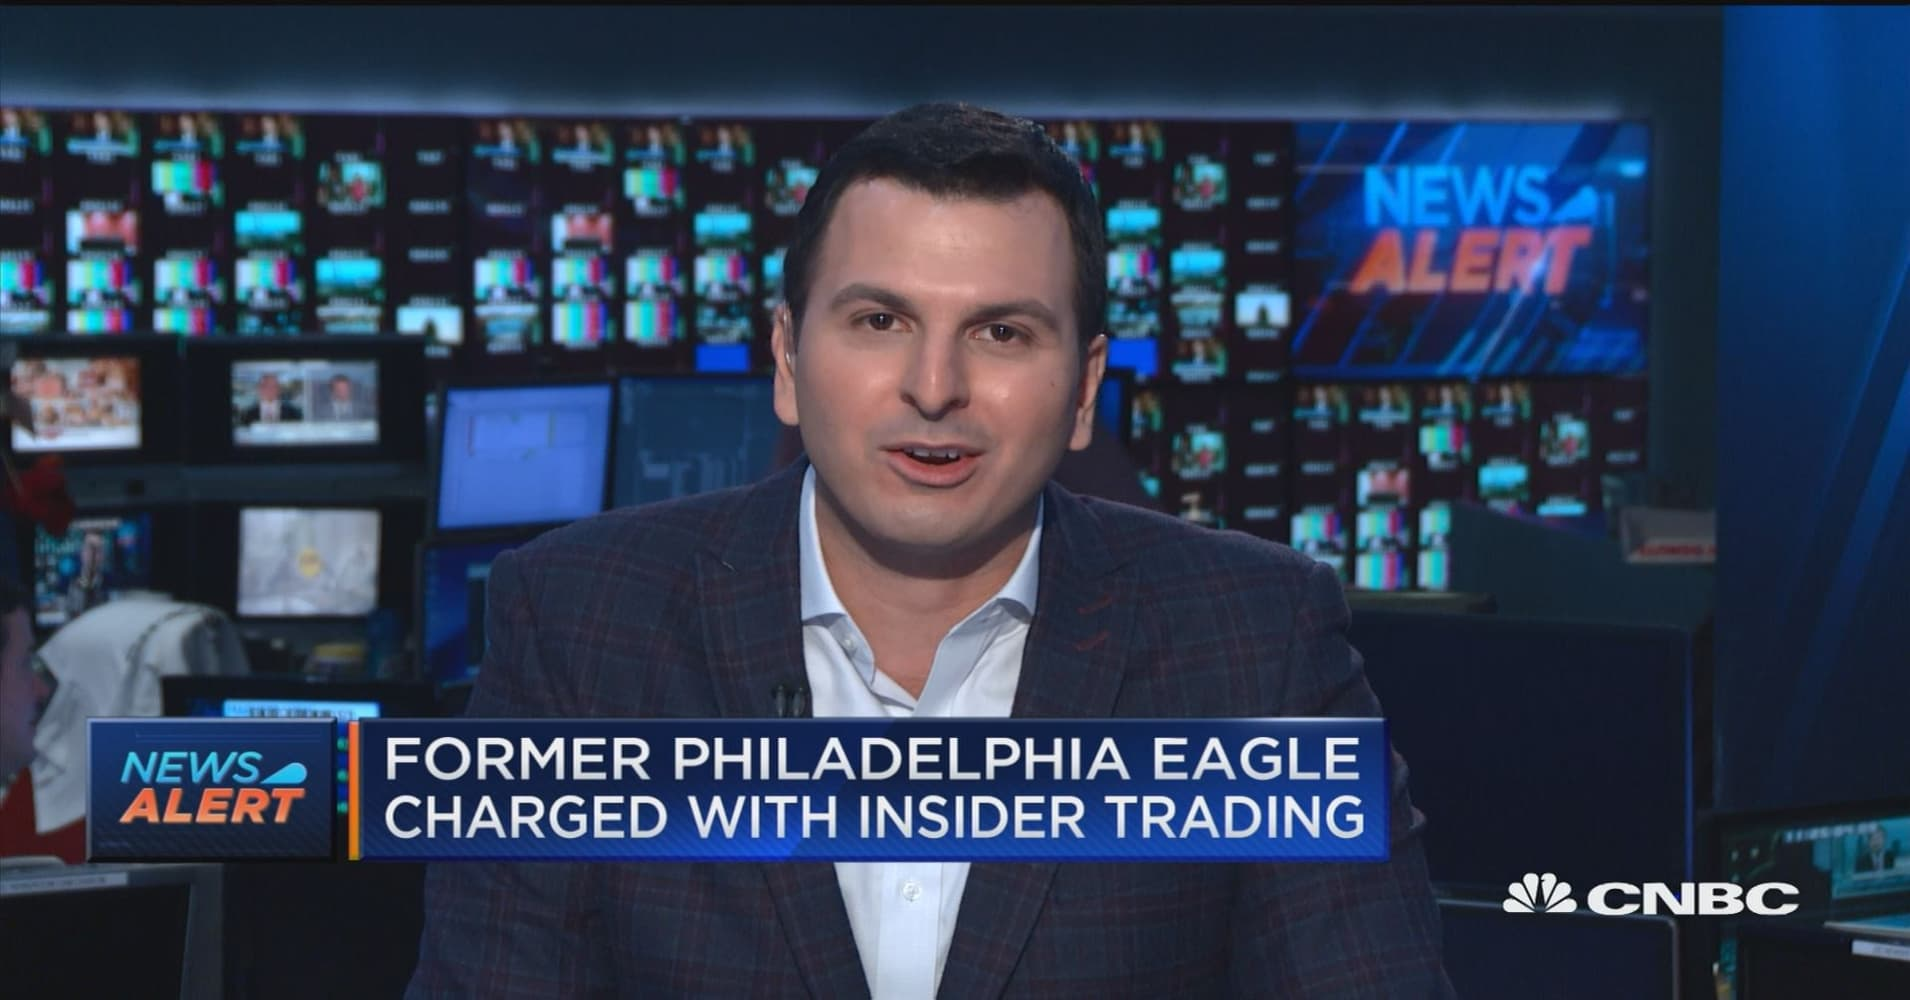 Former Philadelphia Eagles player charged with insider trading